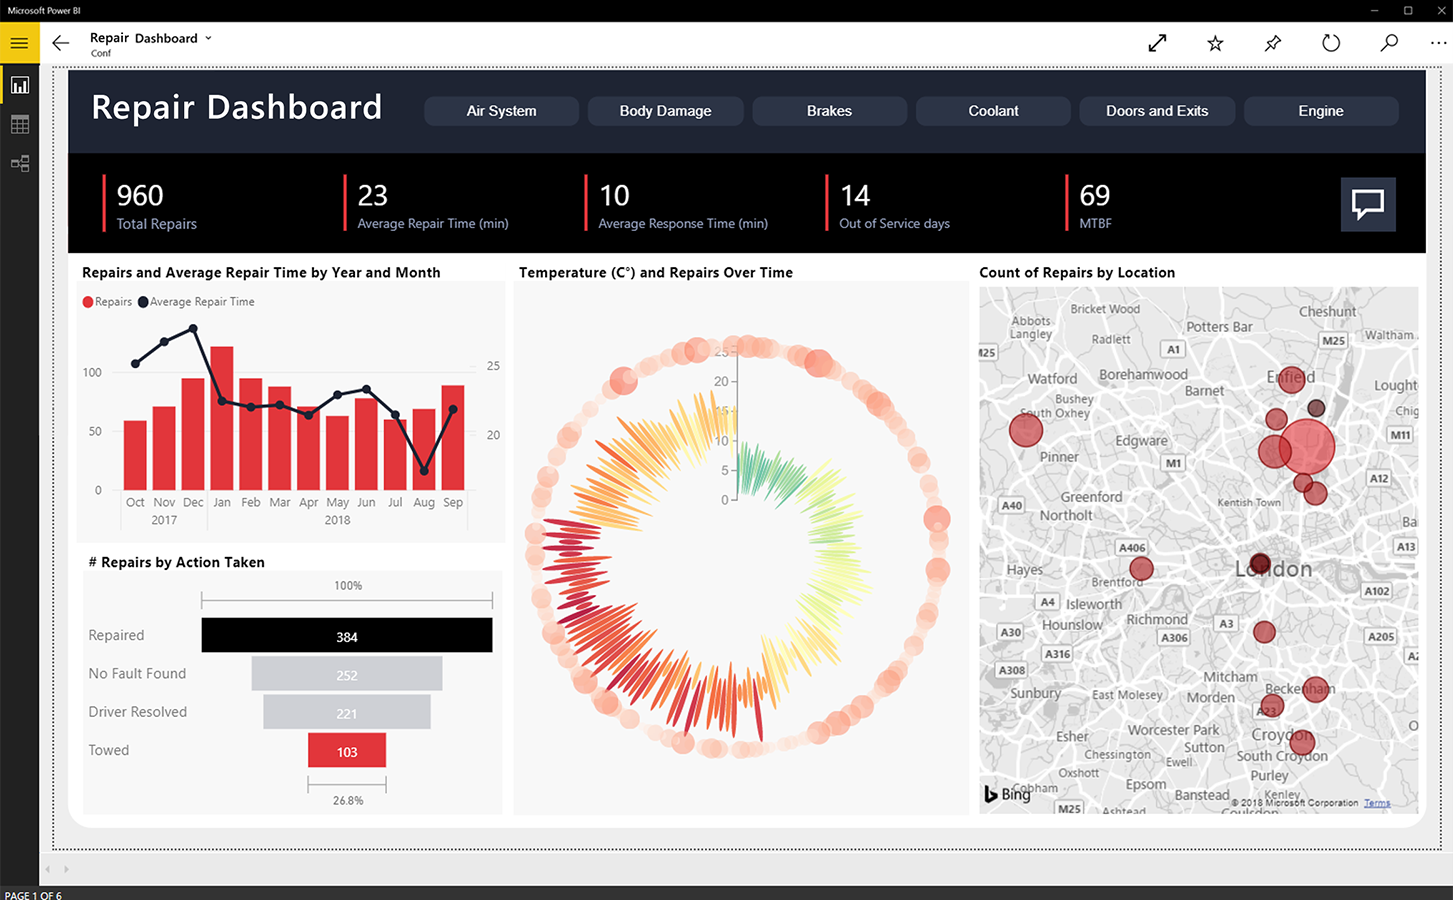 Webinar - What is new and coming for Enterprise BI with Power BI